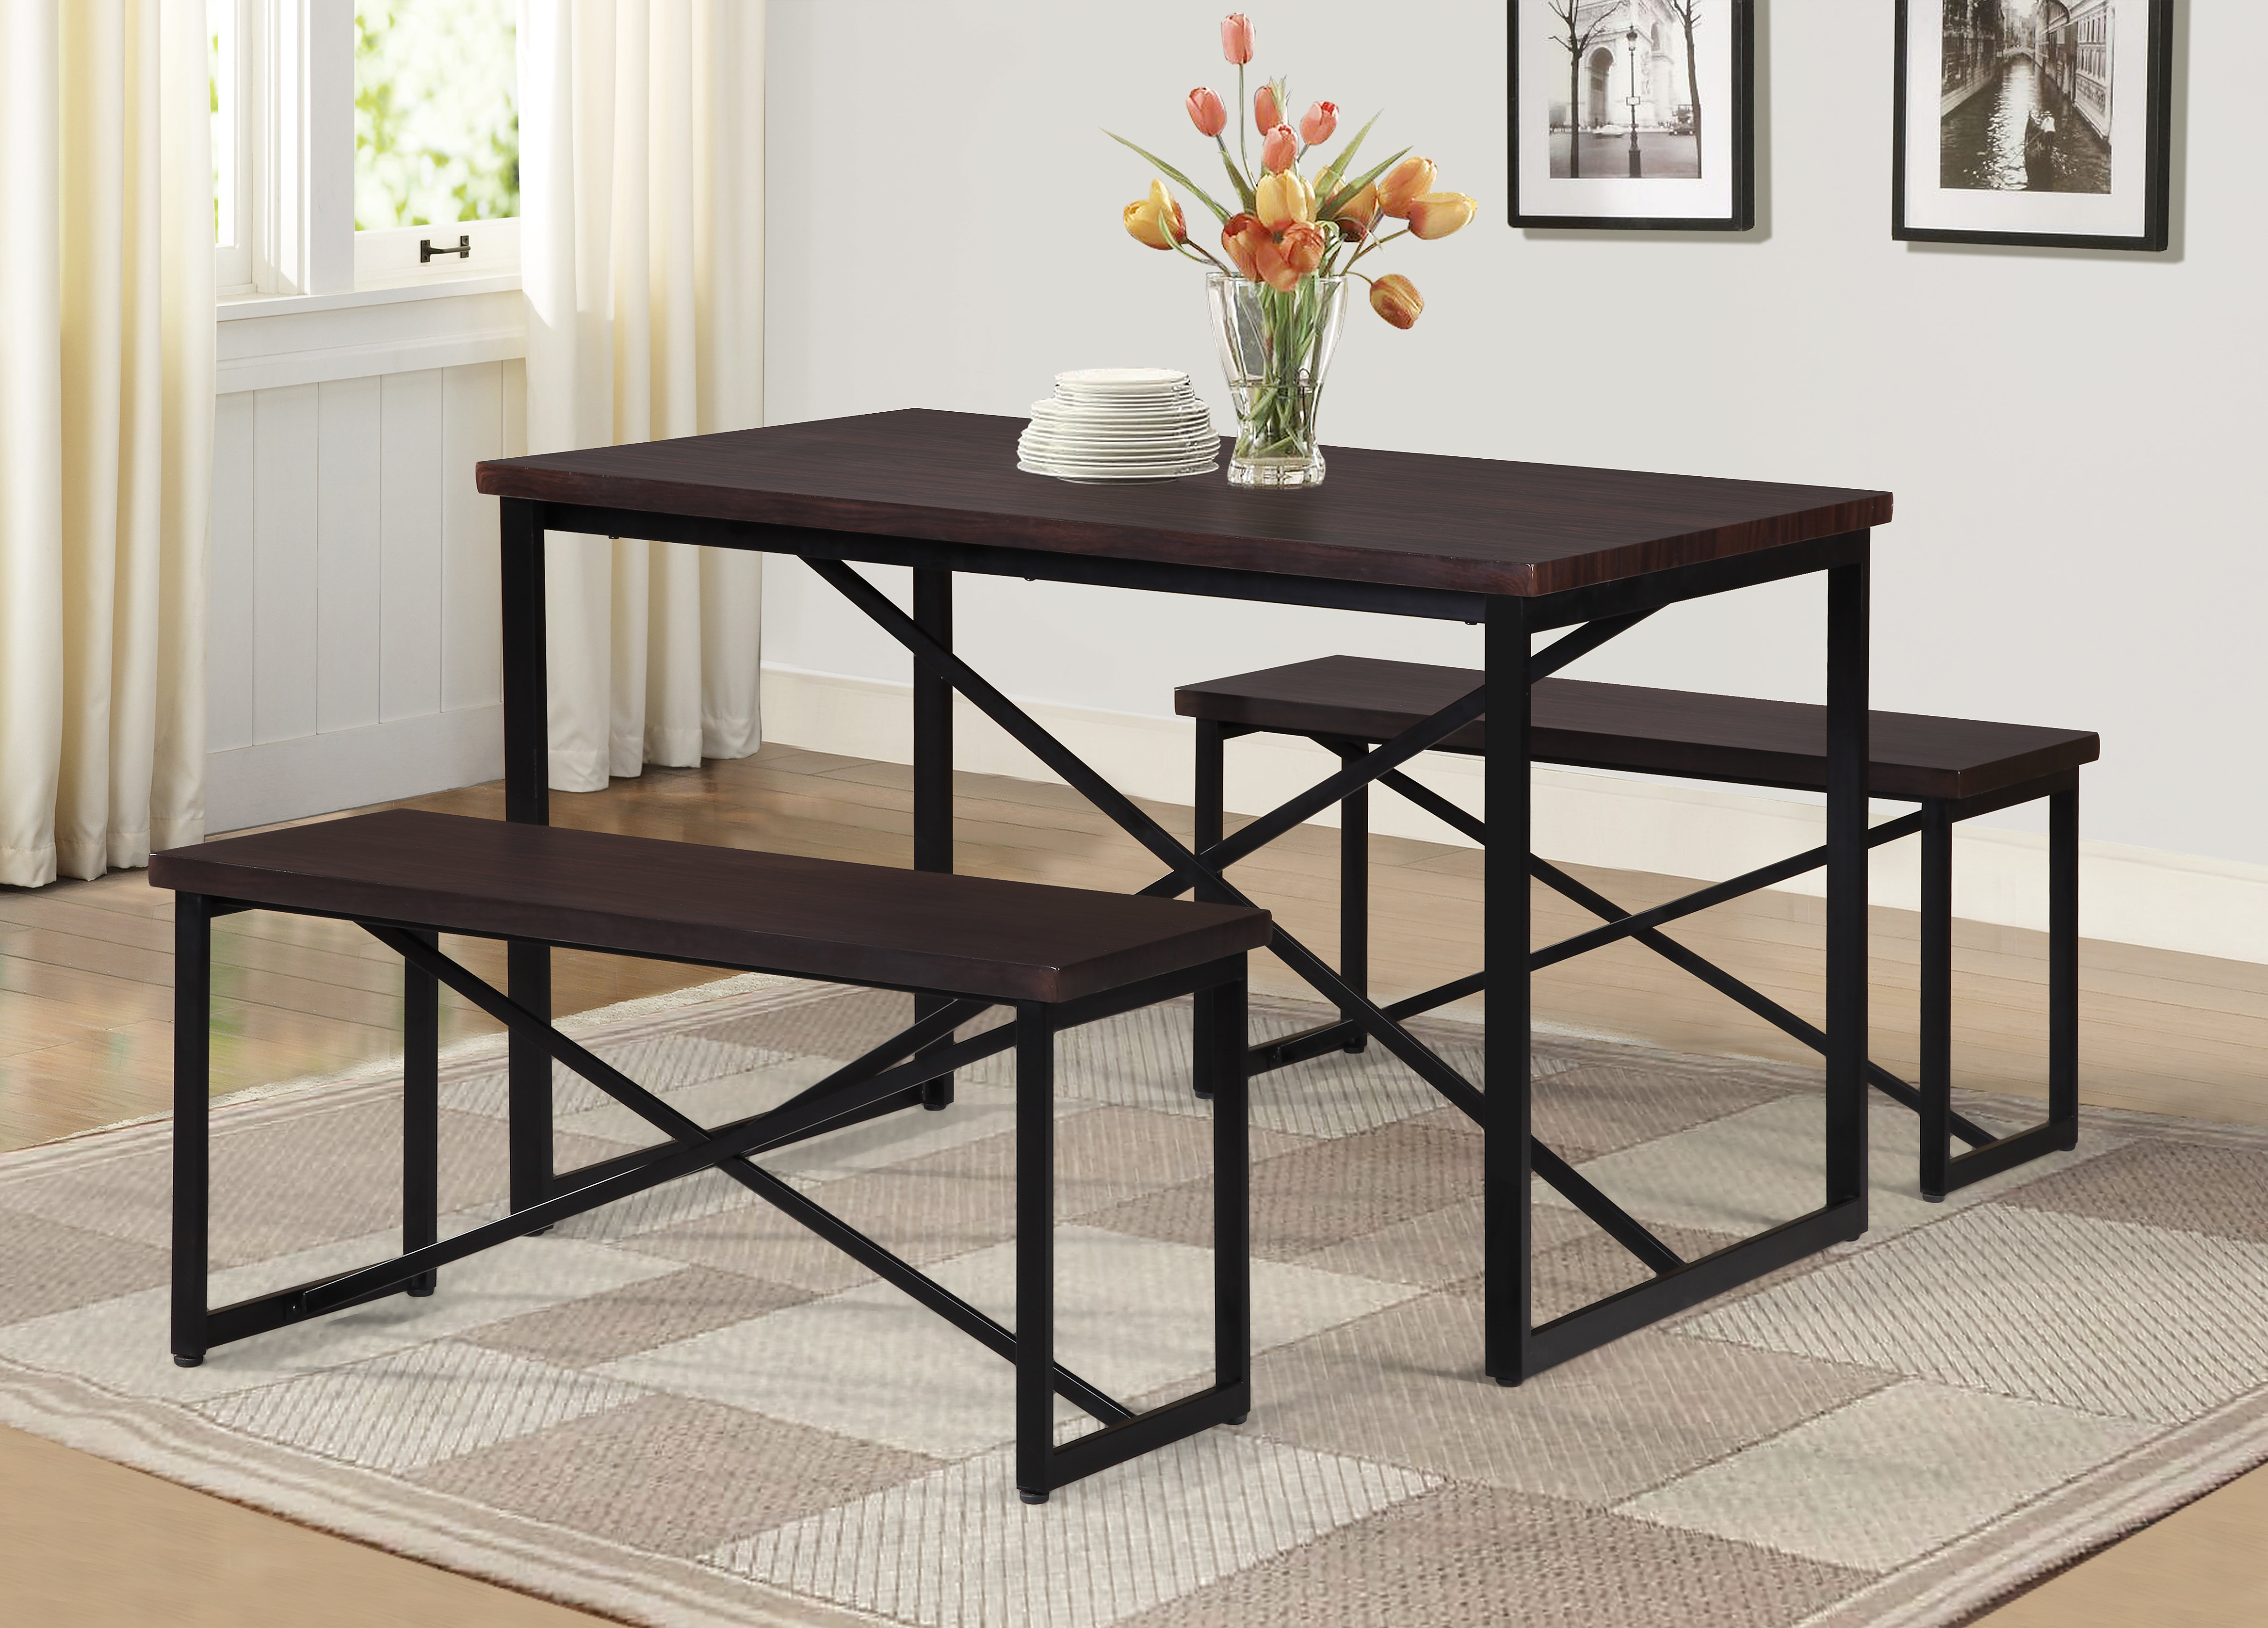 Bearden 3 Piece Dining Set Pertaining To Most Current Rossiter 3 Piece Dining Sets (Image 2 of 20)